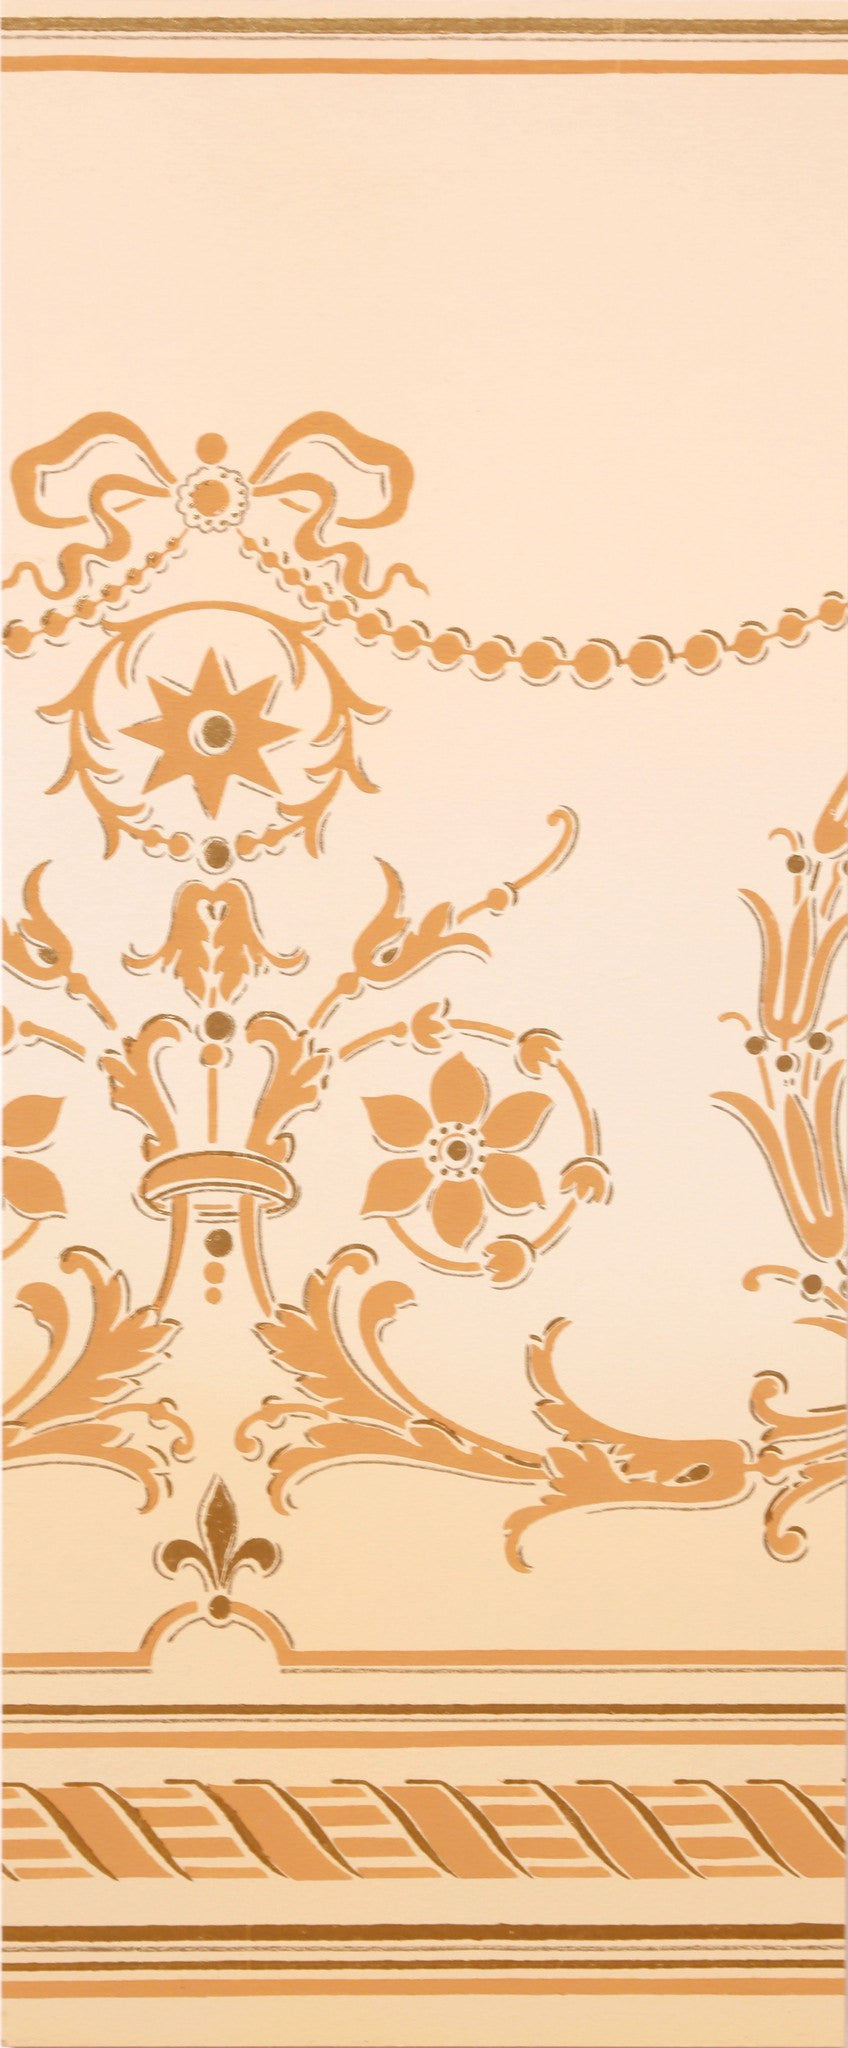 Blended Frieze With Delicate Swags Florals Antique Wallpaper Wall